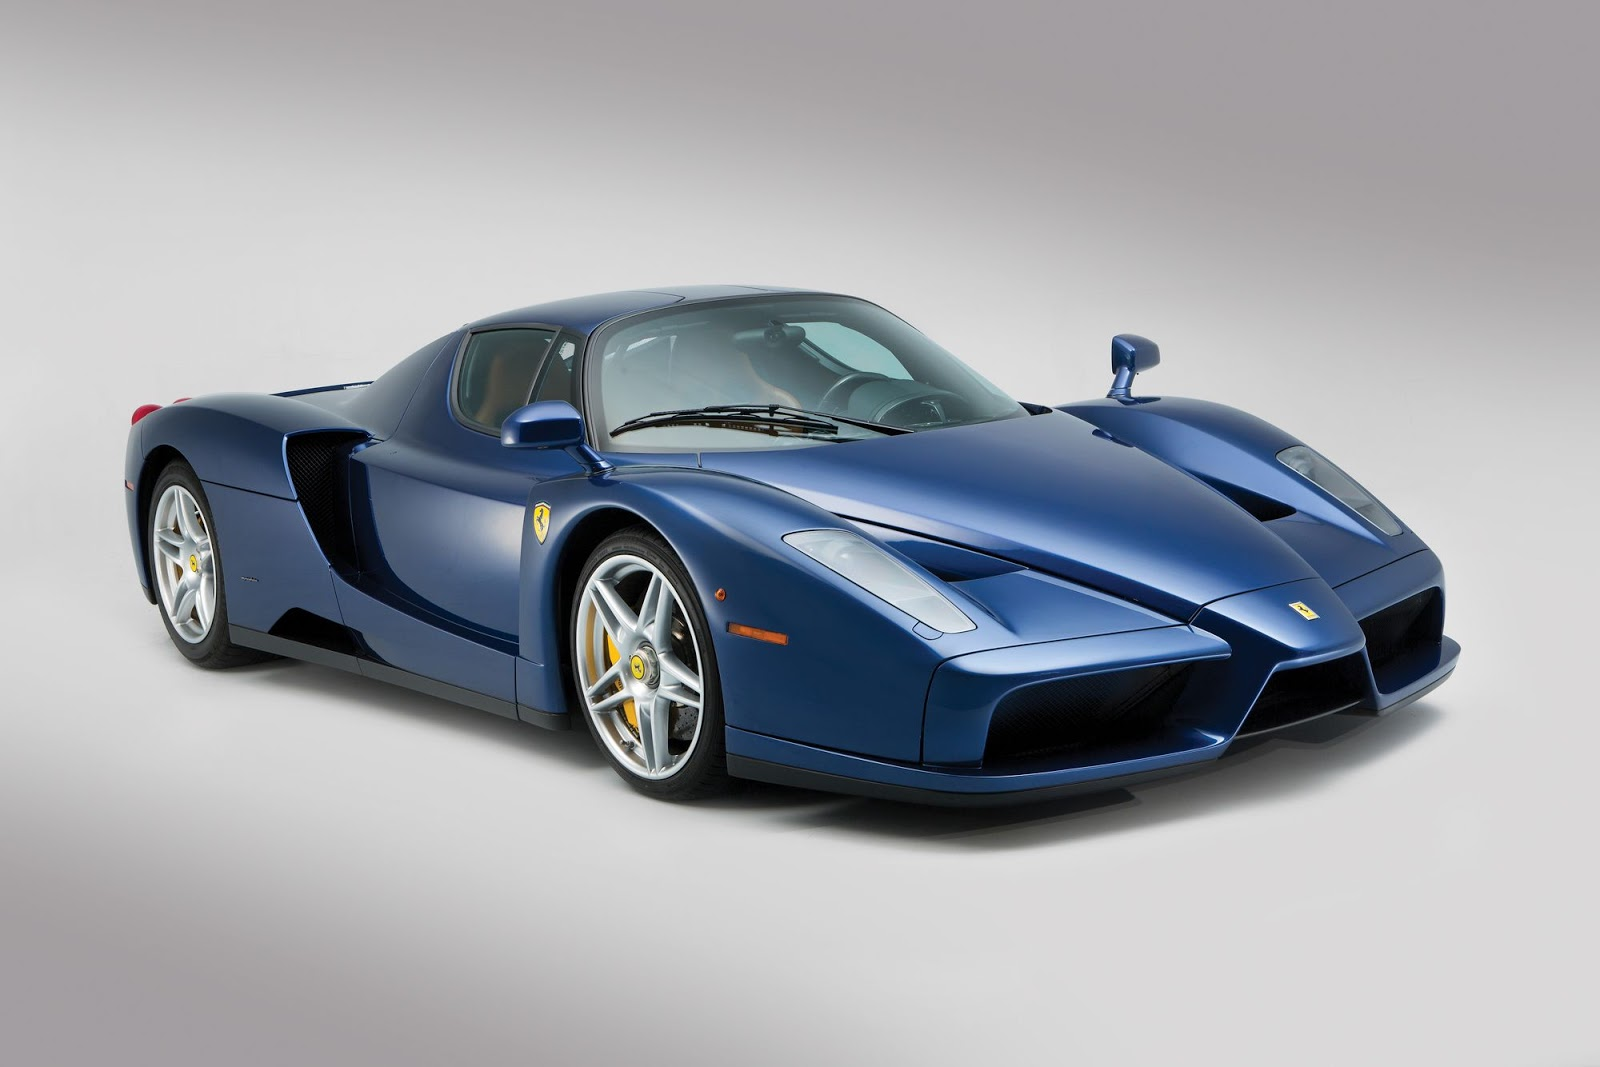 rare blu tour de france ferrari enzo bound for auction carscoops. Black Bedroom Furniture Sets. Home Design Ideas